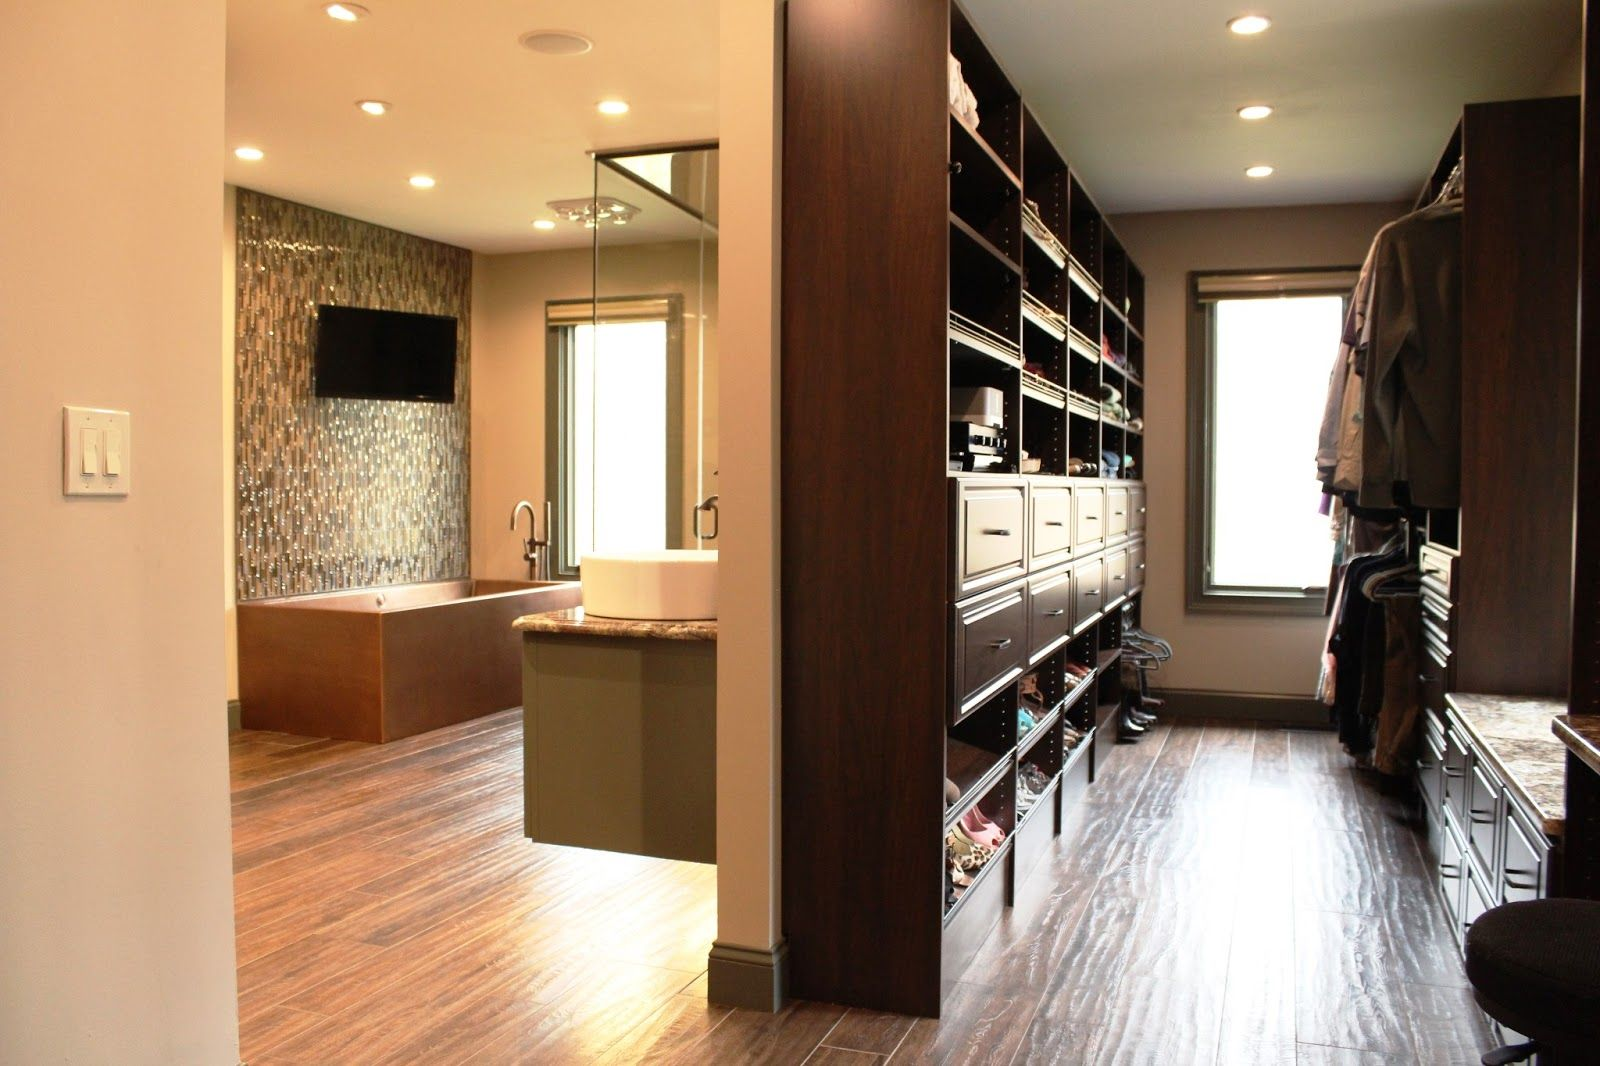 Luxury walk in closet pictures for inspiration - Walk in closet designs for a master bedroom ...